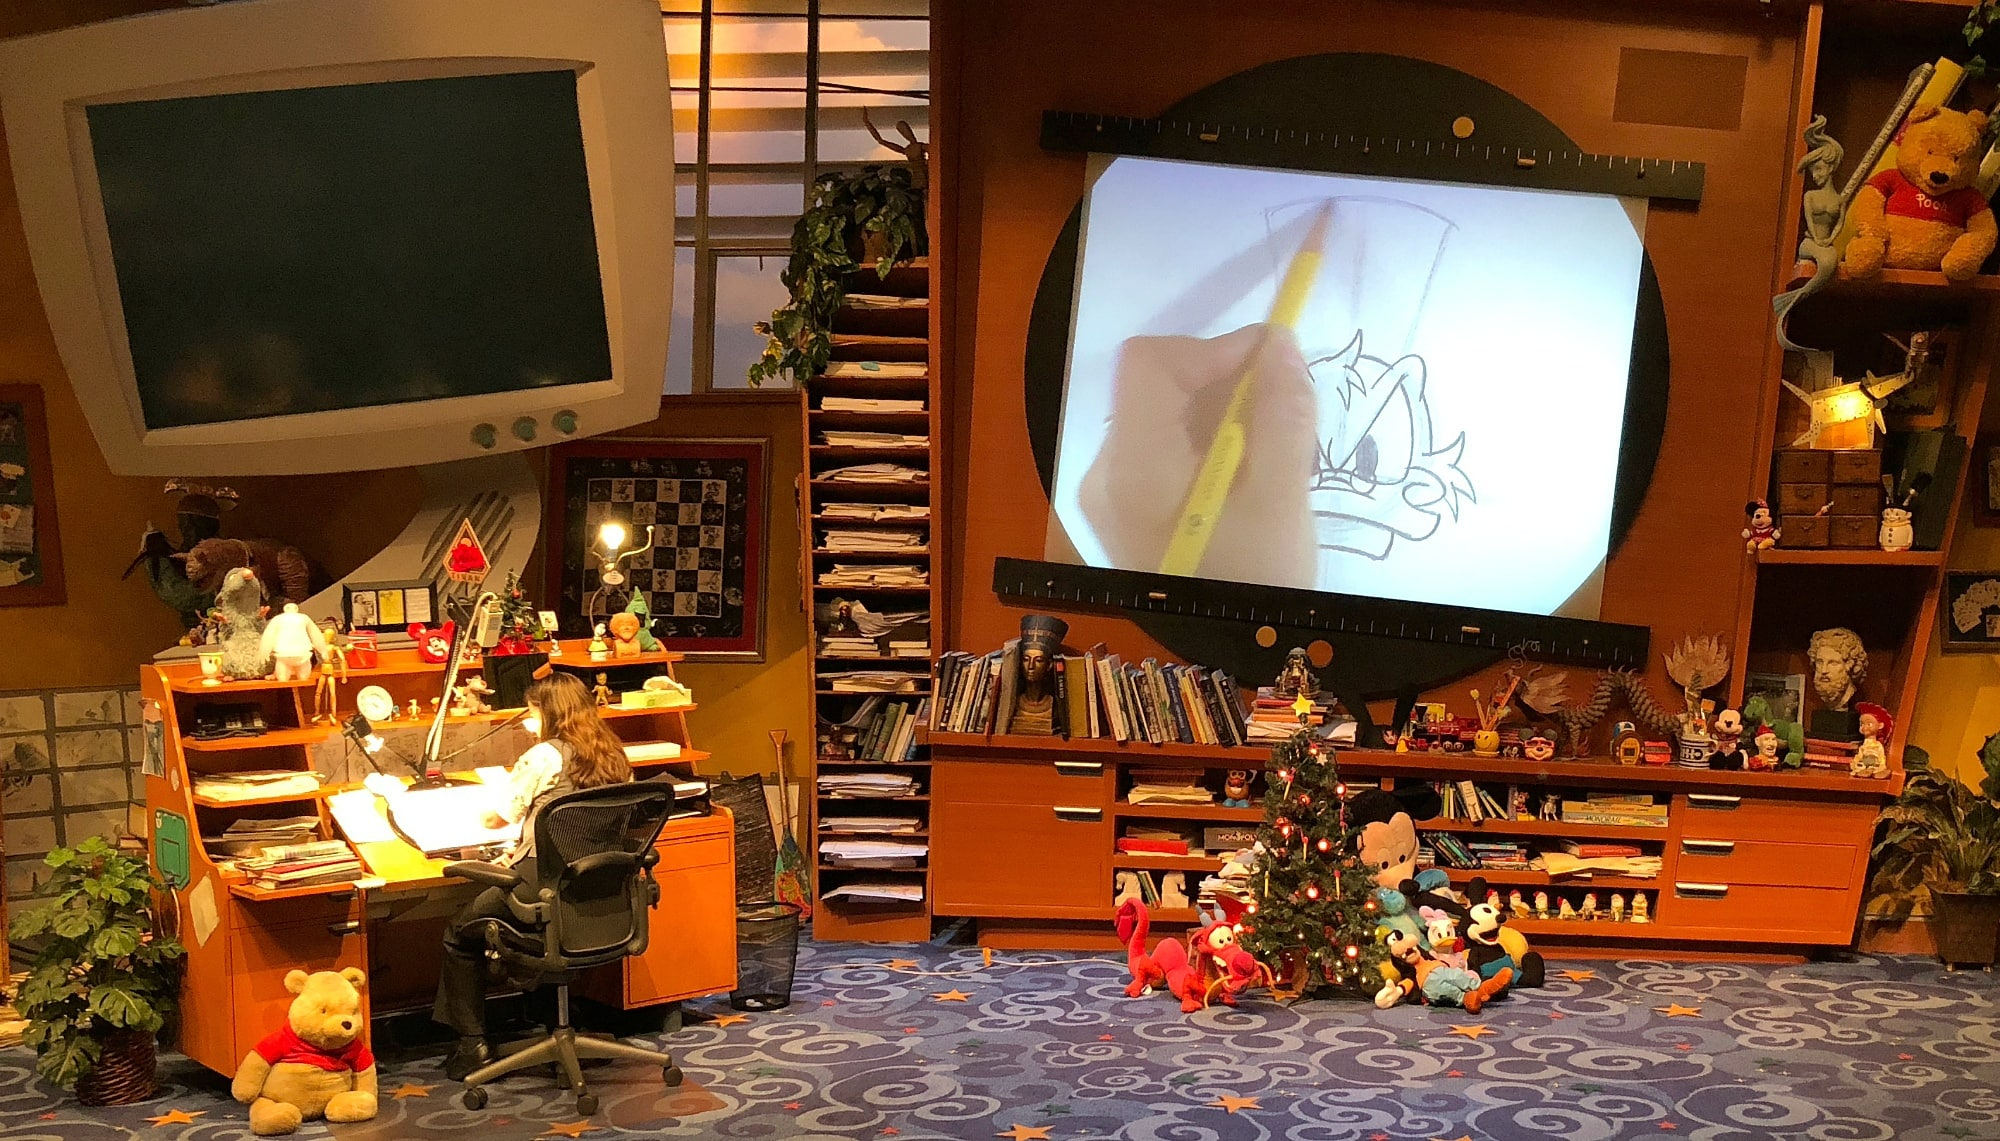 Get creative at Animation Academy at Disney California Adventure ~ Educational Things to Do at Disneyland with Kids